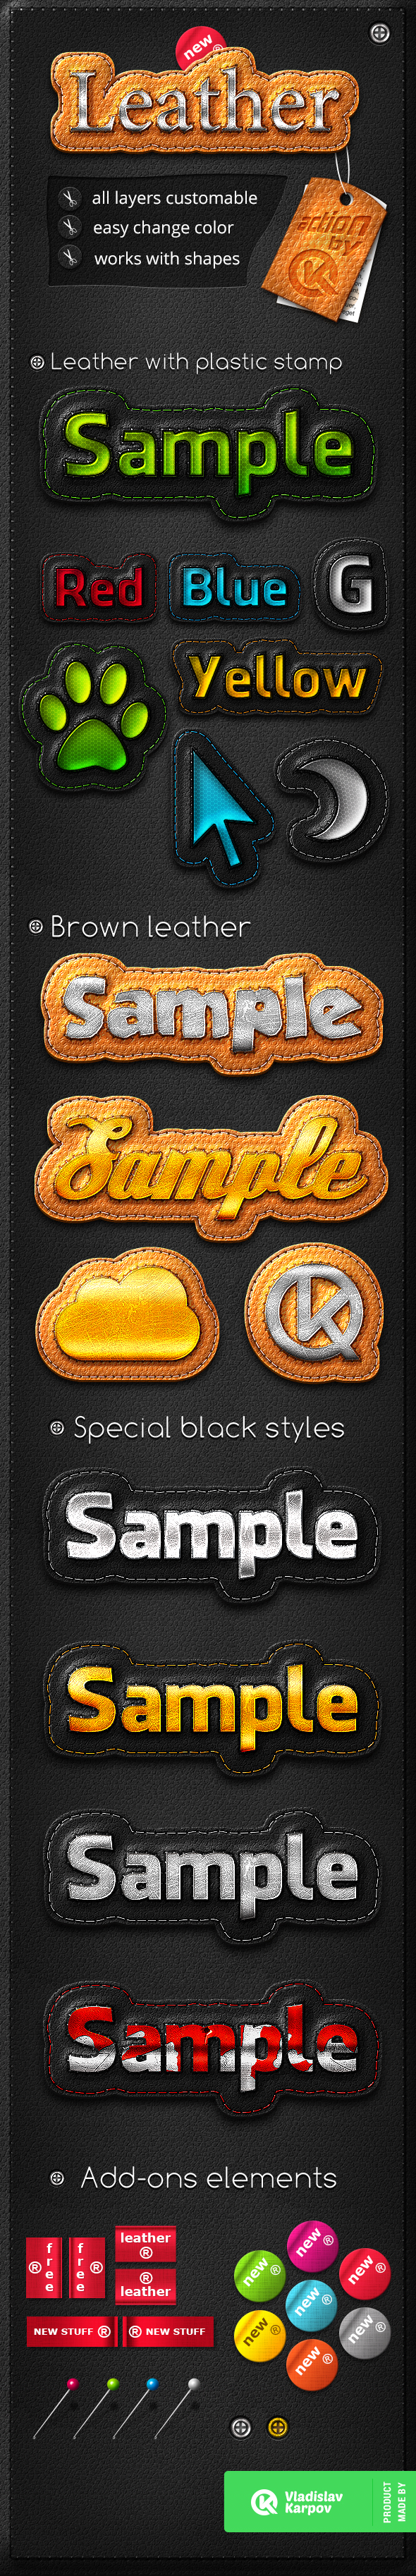 Leather Stripe Actions - Text Effects Actions